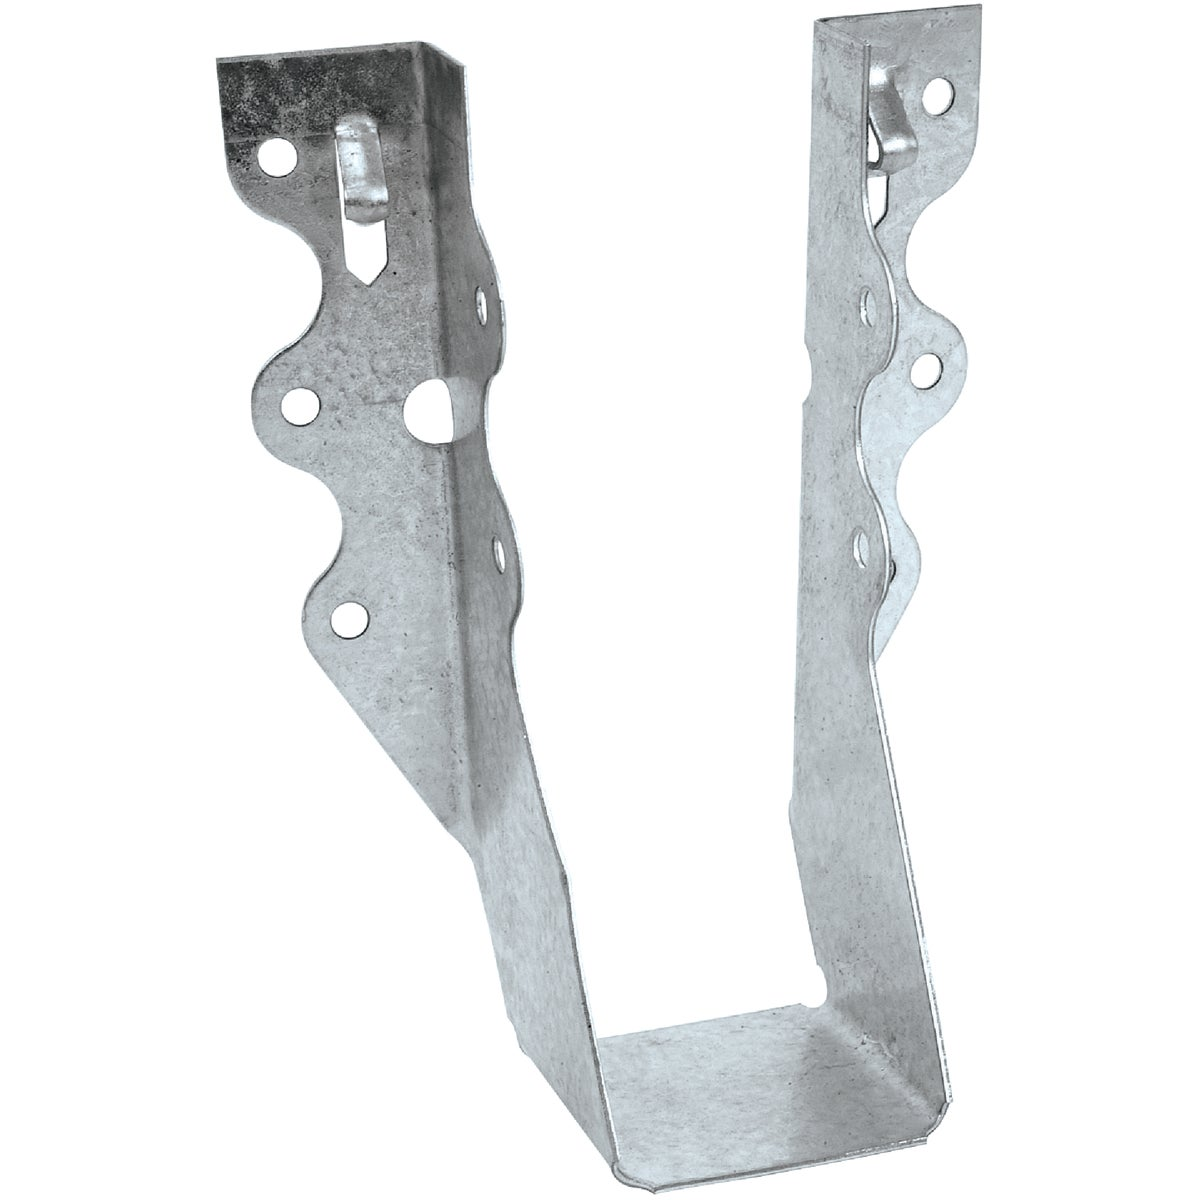 2X6 JOIST HANGER - LU26 by Simpson Strong Tie